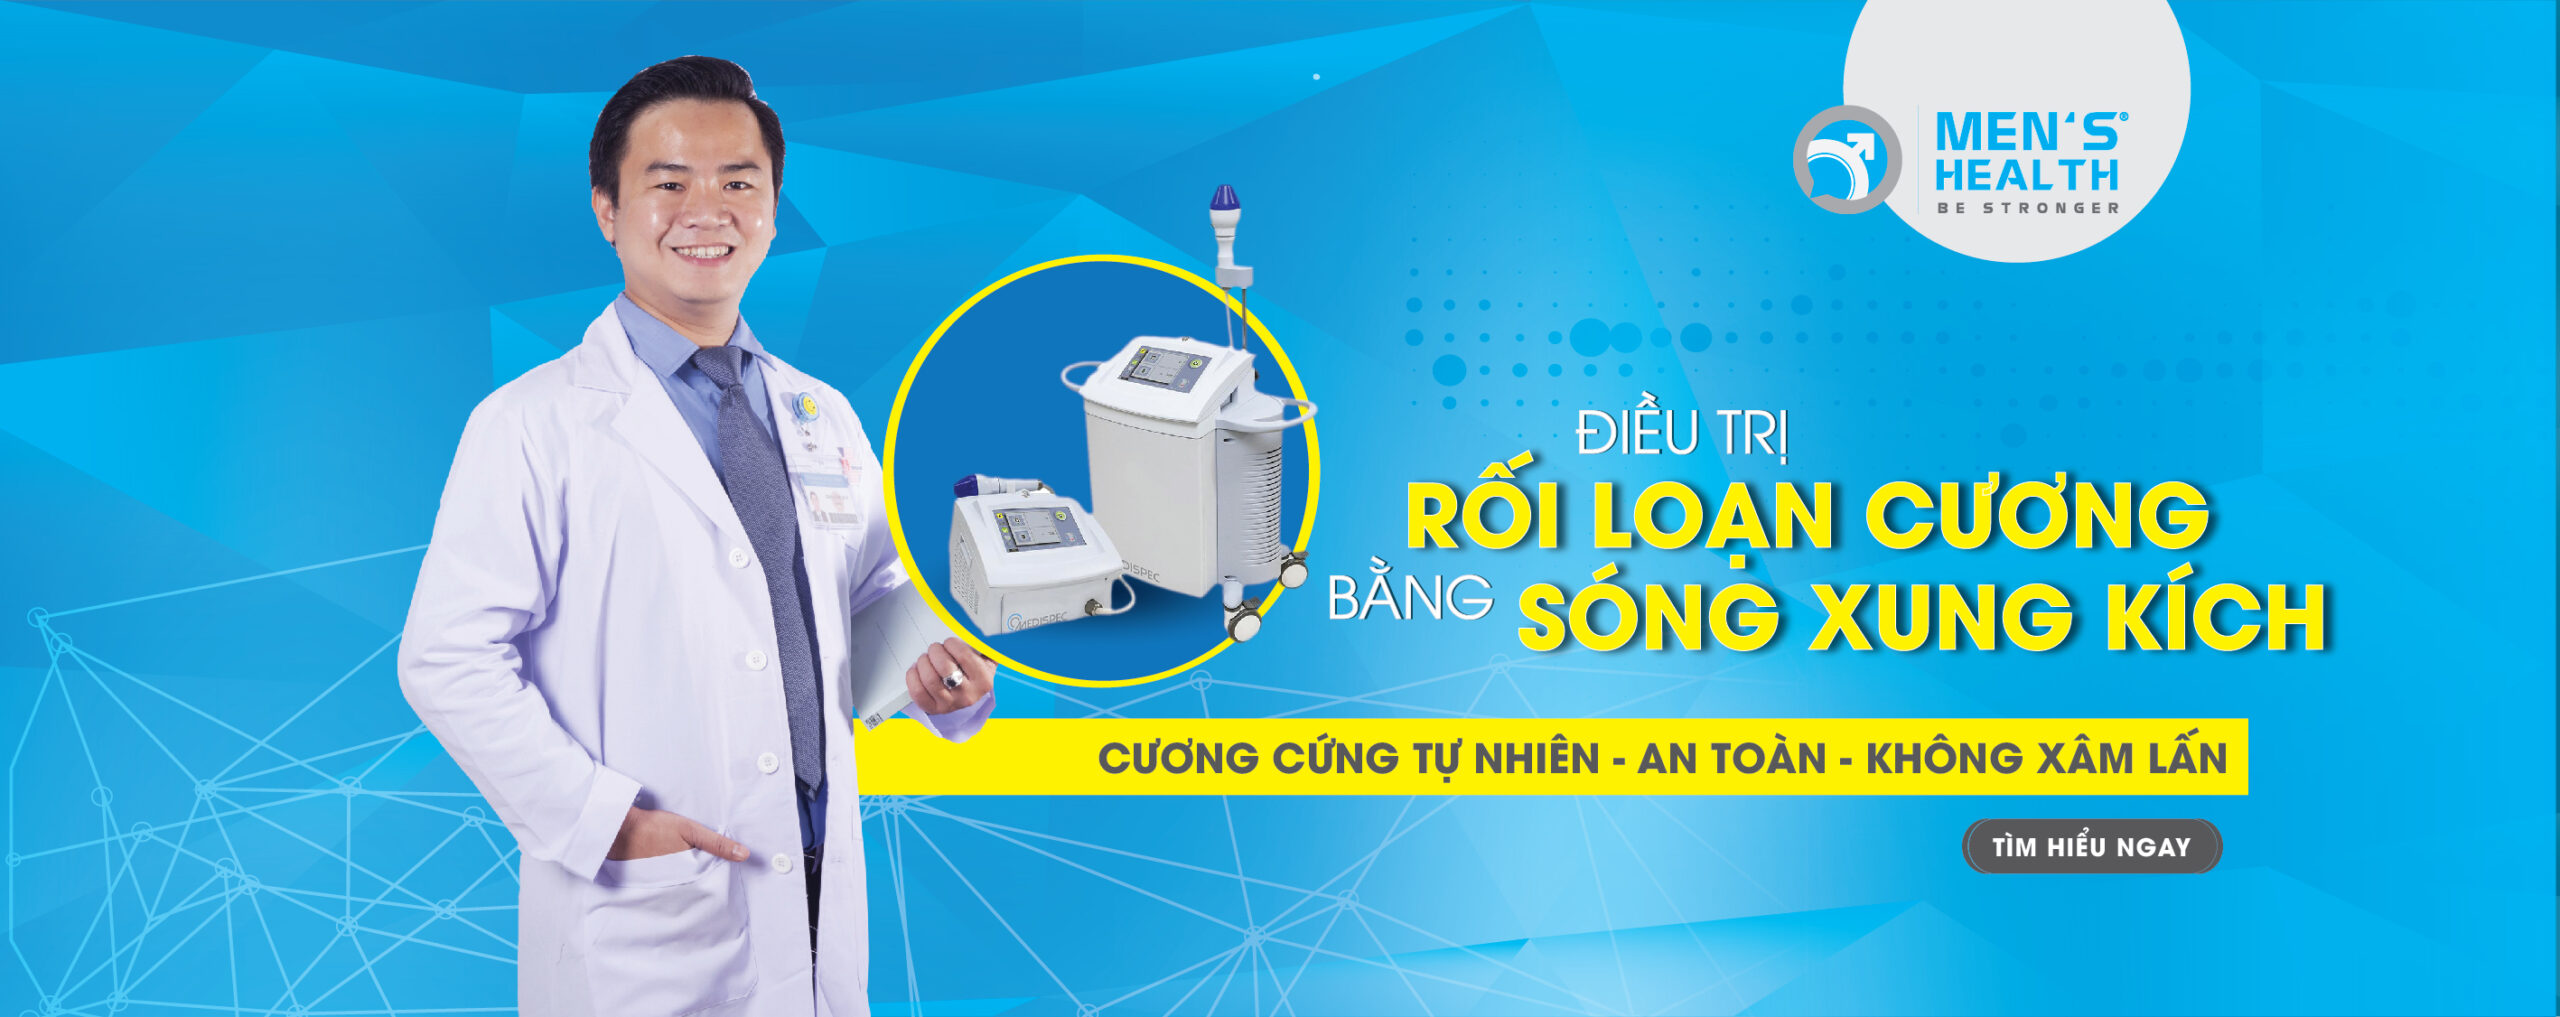 slider-roi-loan-cuong